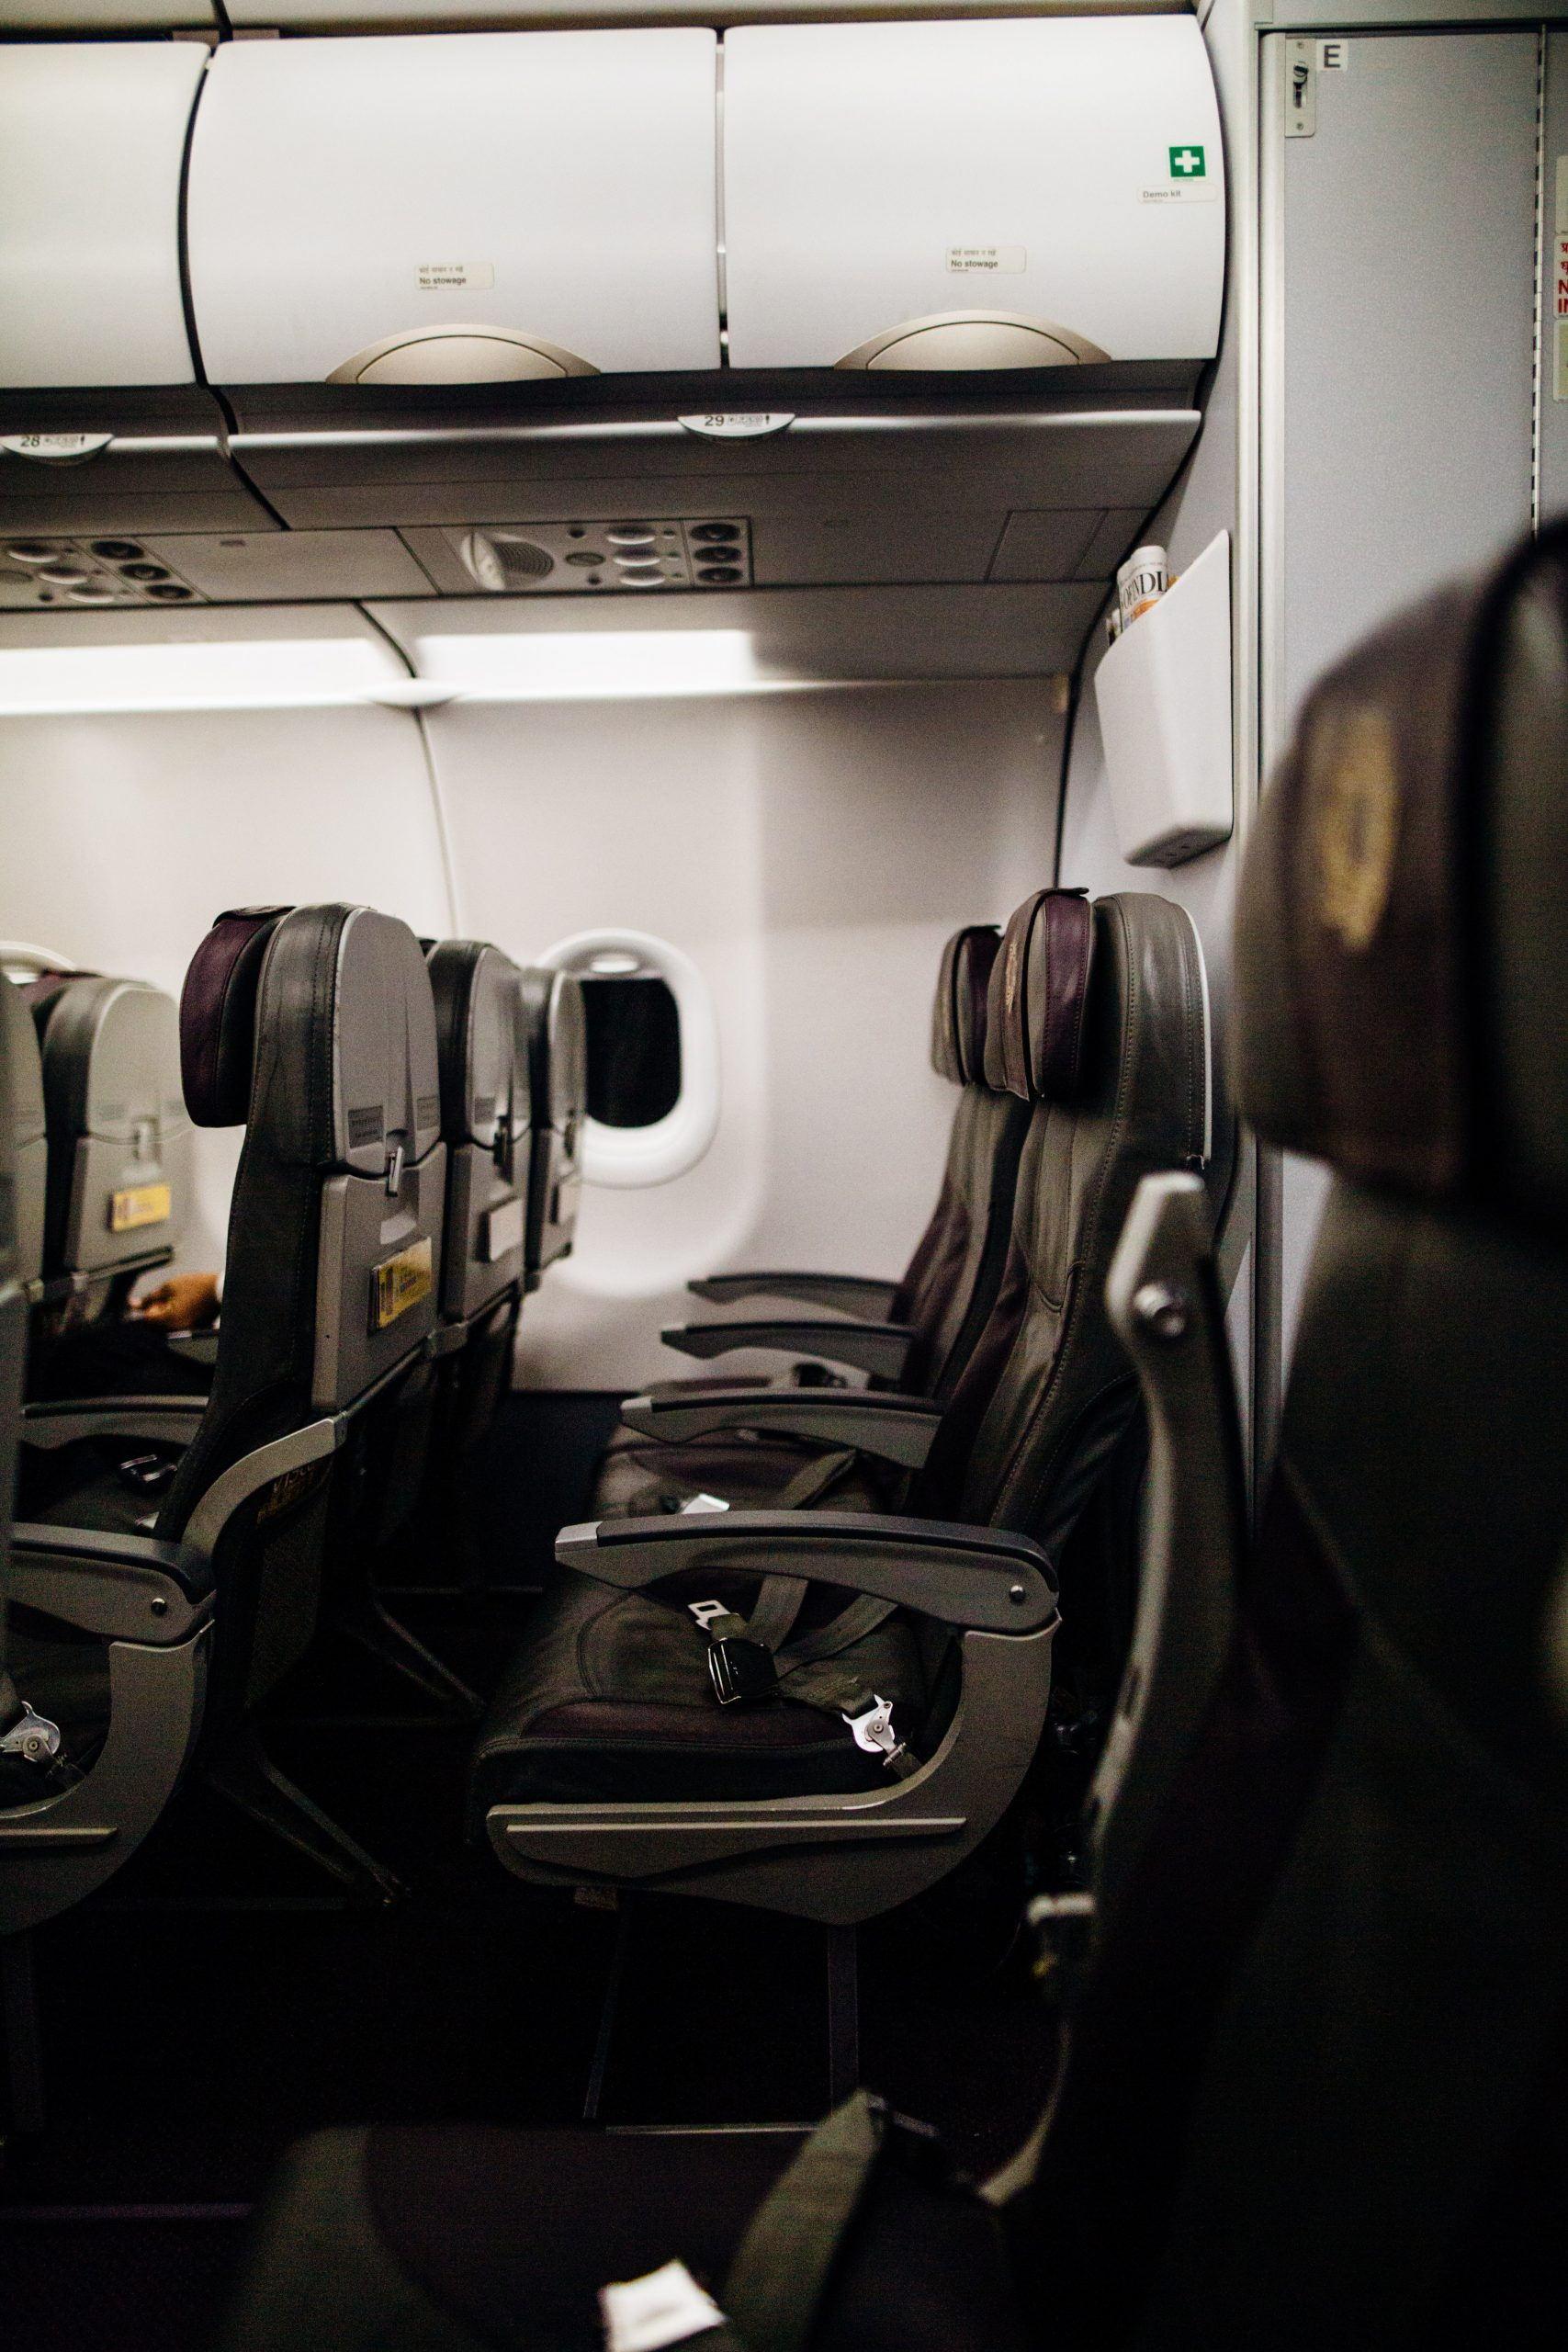 Disinfecting Your Airplane Seat The Proper Way-A Guide